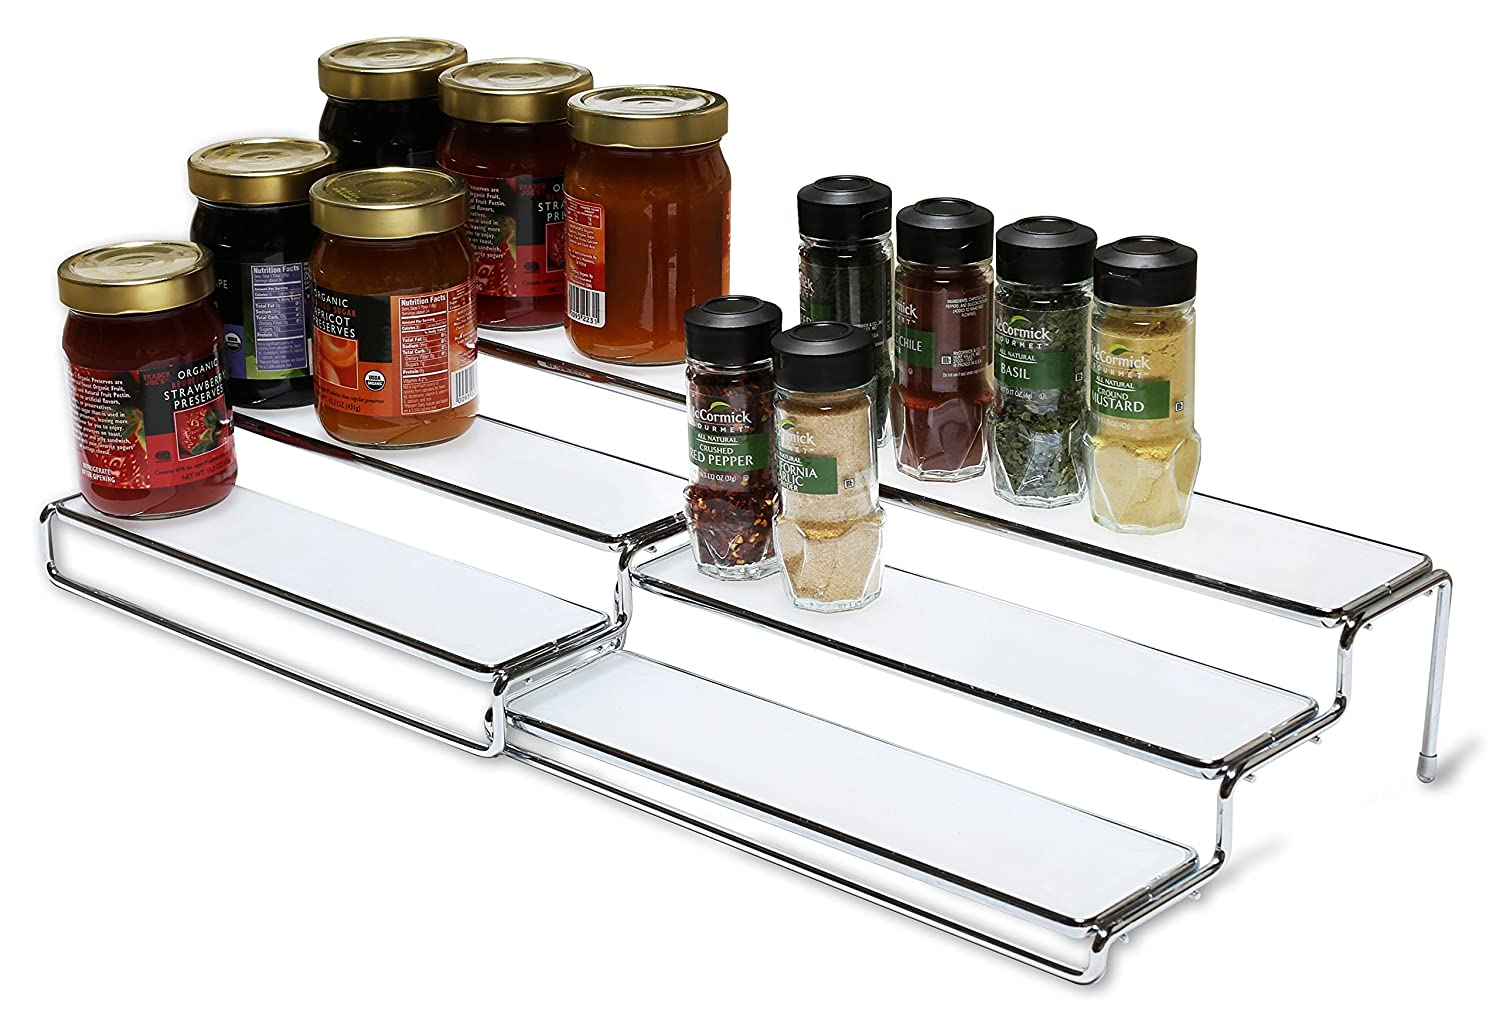 Deco Brothers RK-022-1 FBA_RK-022-1 DecoBros 3 Tier Expandable Cabinet Spice Rack Step Shelf Organizer (12.5~25 Inch), Chrome